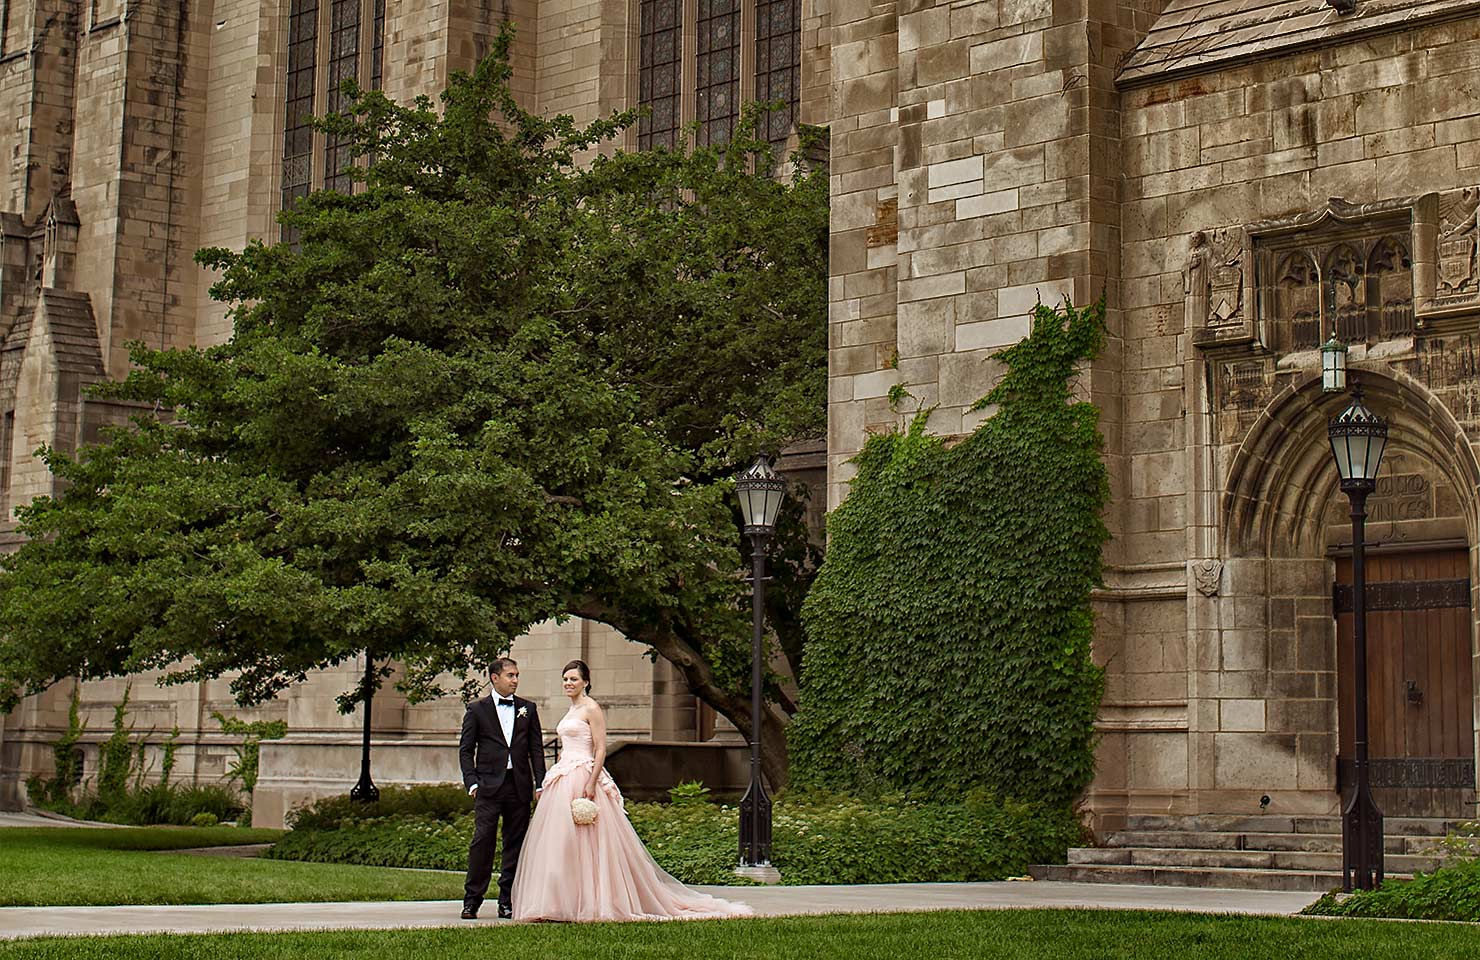 Chicago Wedding Photography at University of Chicago by Rockefeller Chappel